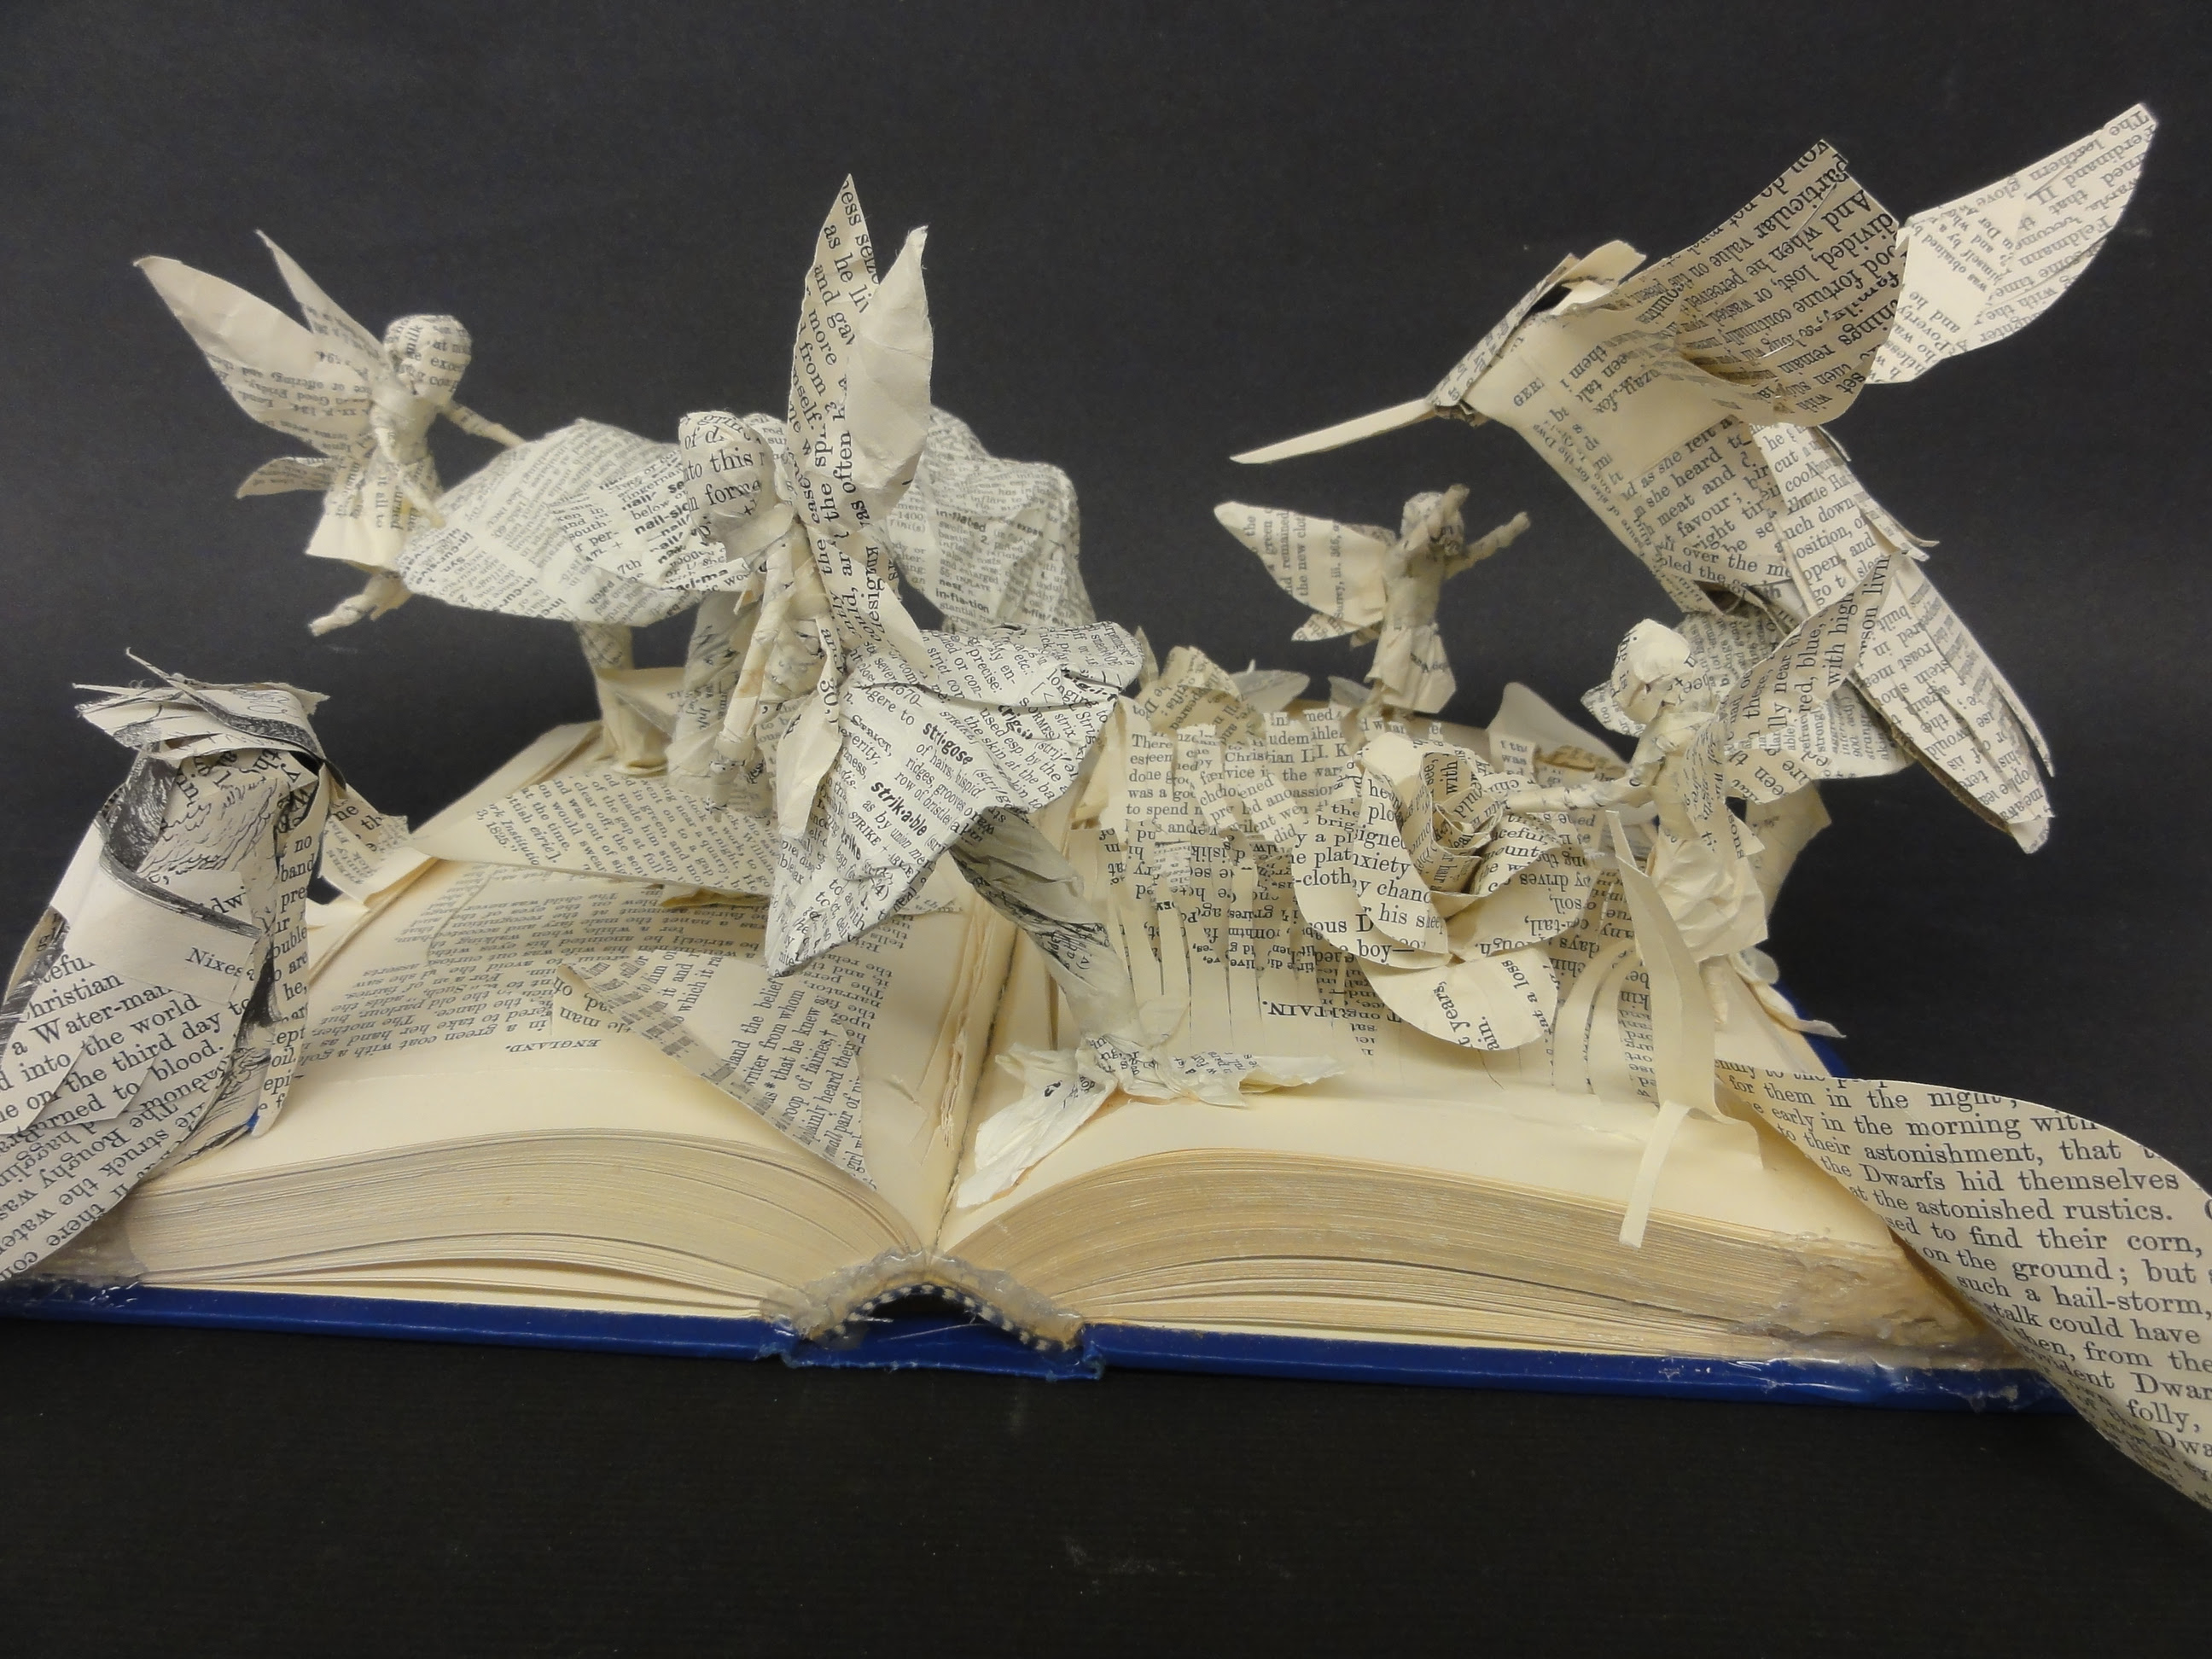 Bayside High students create book sculptures - The Core